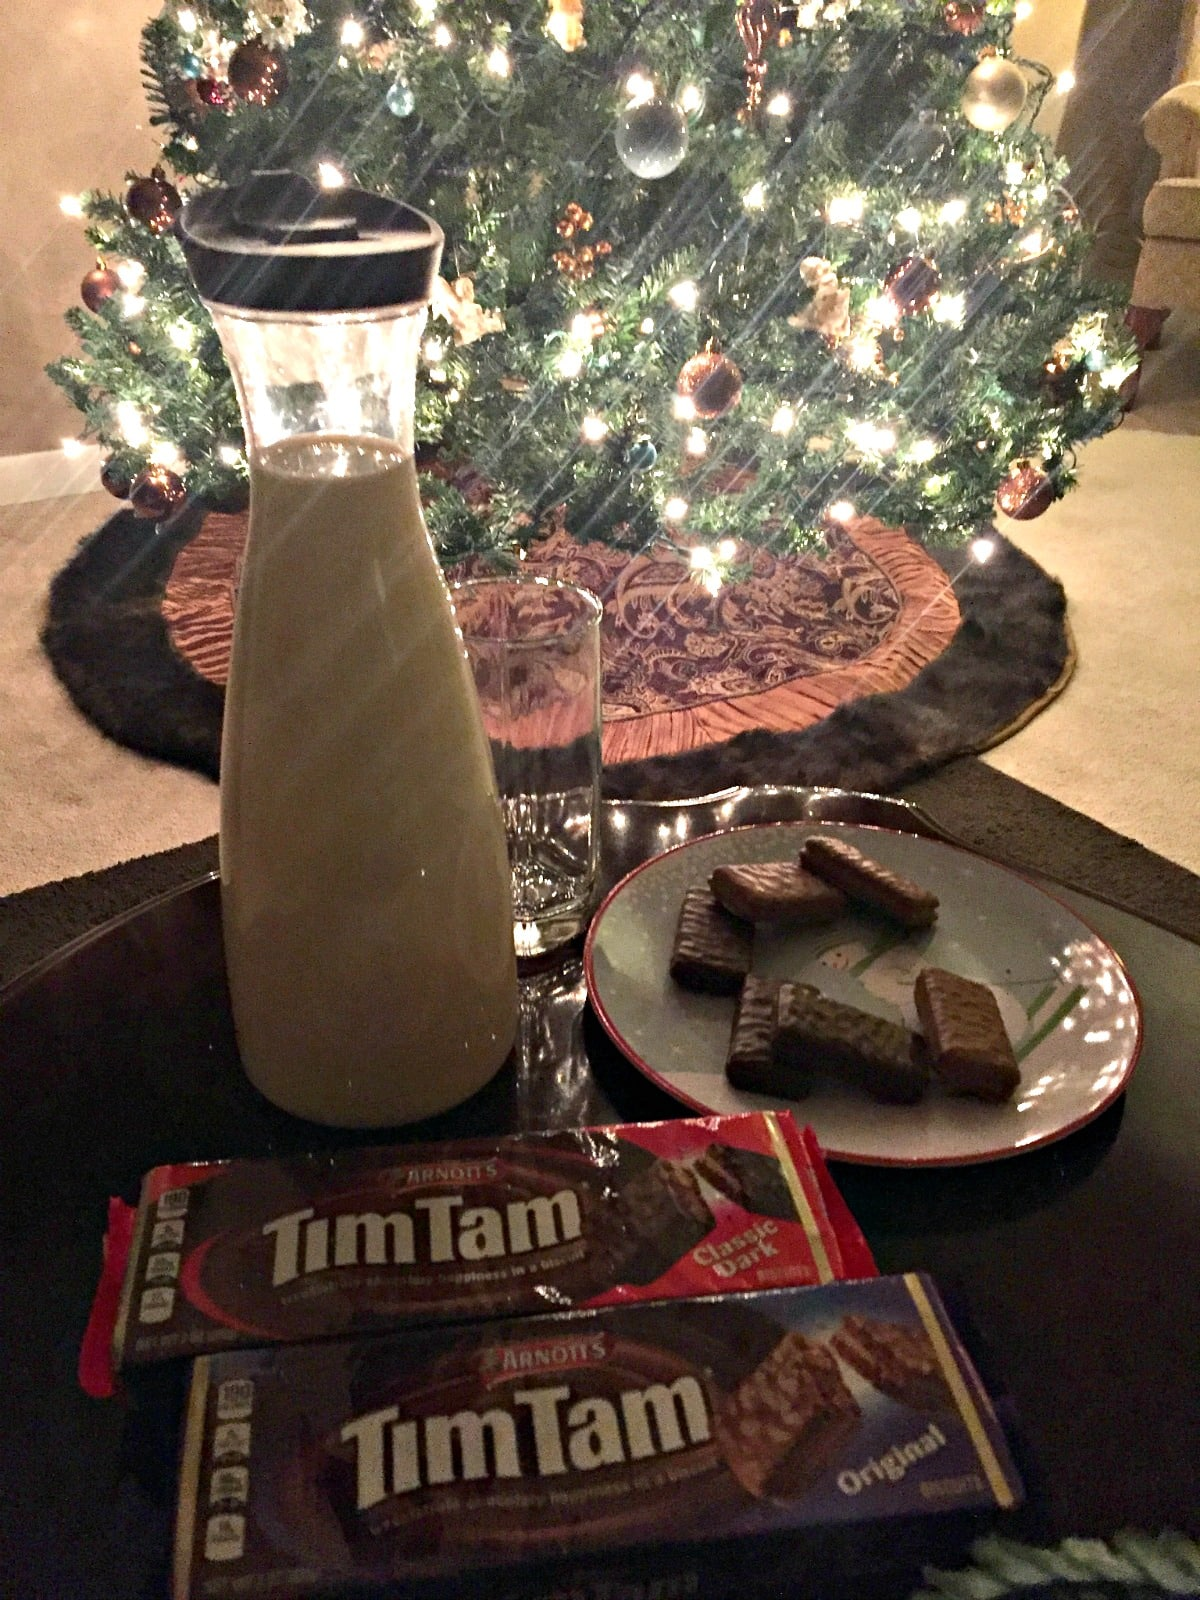 Tim Tam 2 for $5 at Publix and leave Tim Tam Biscuits out for Santa on Christmas Eve